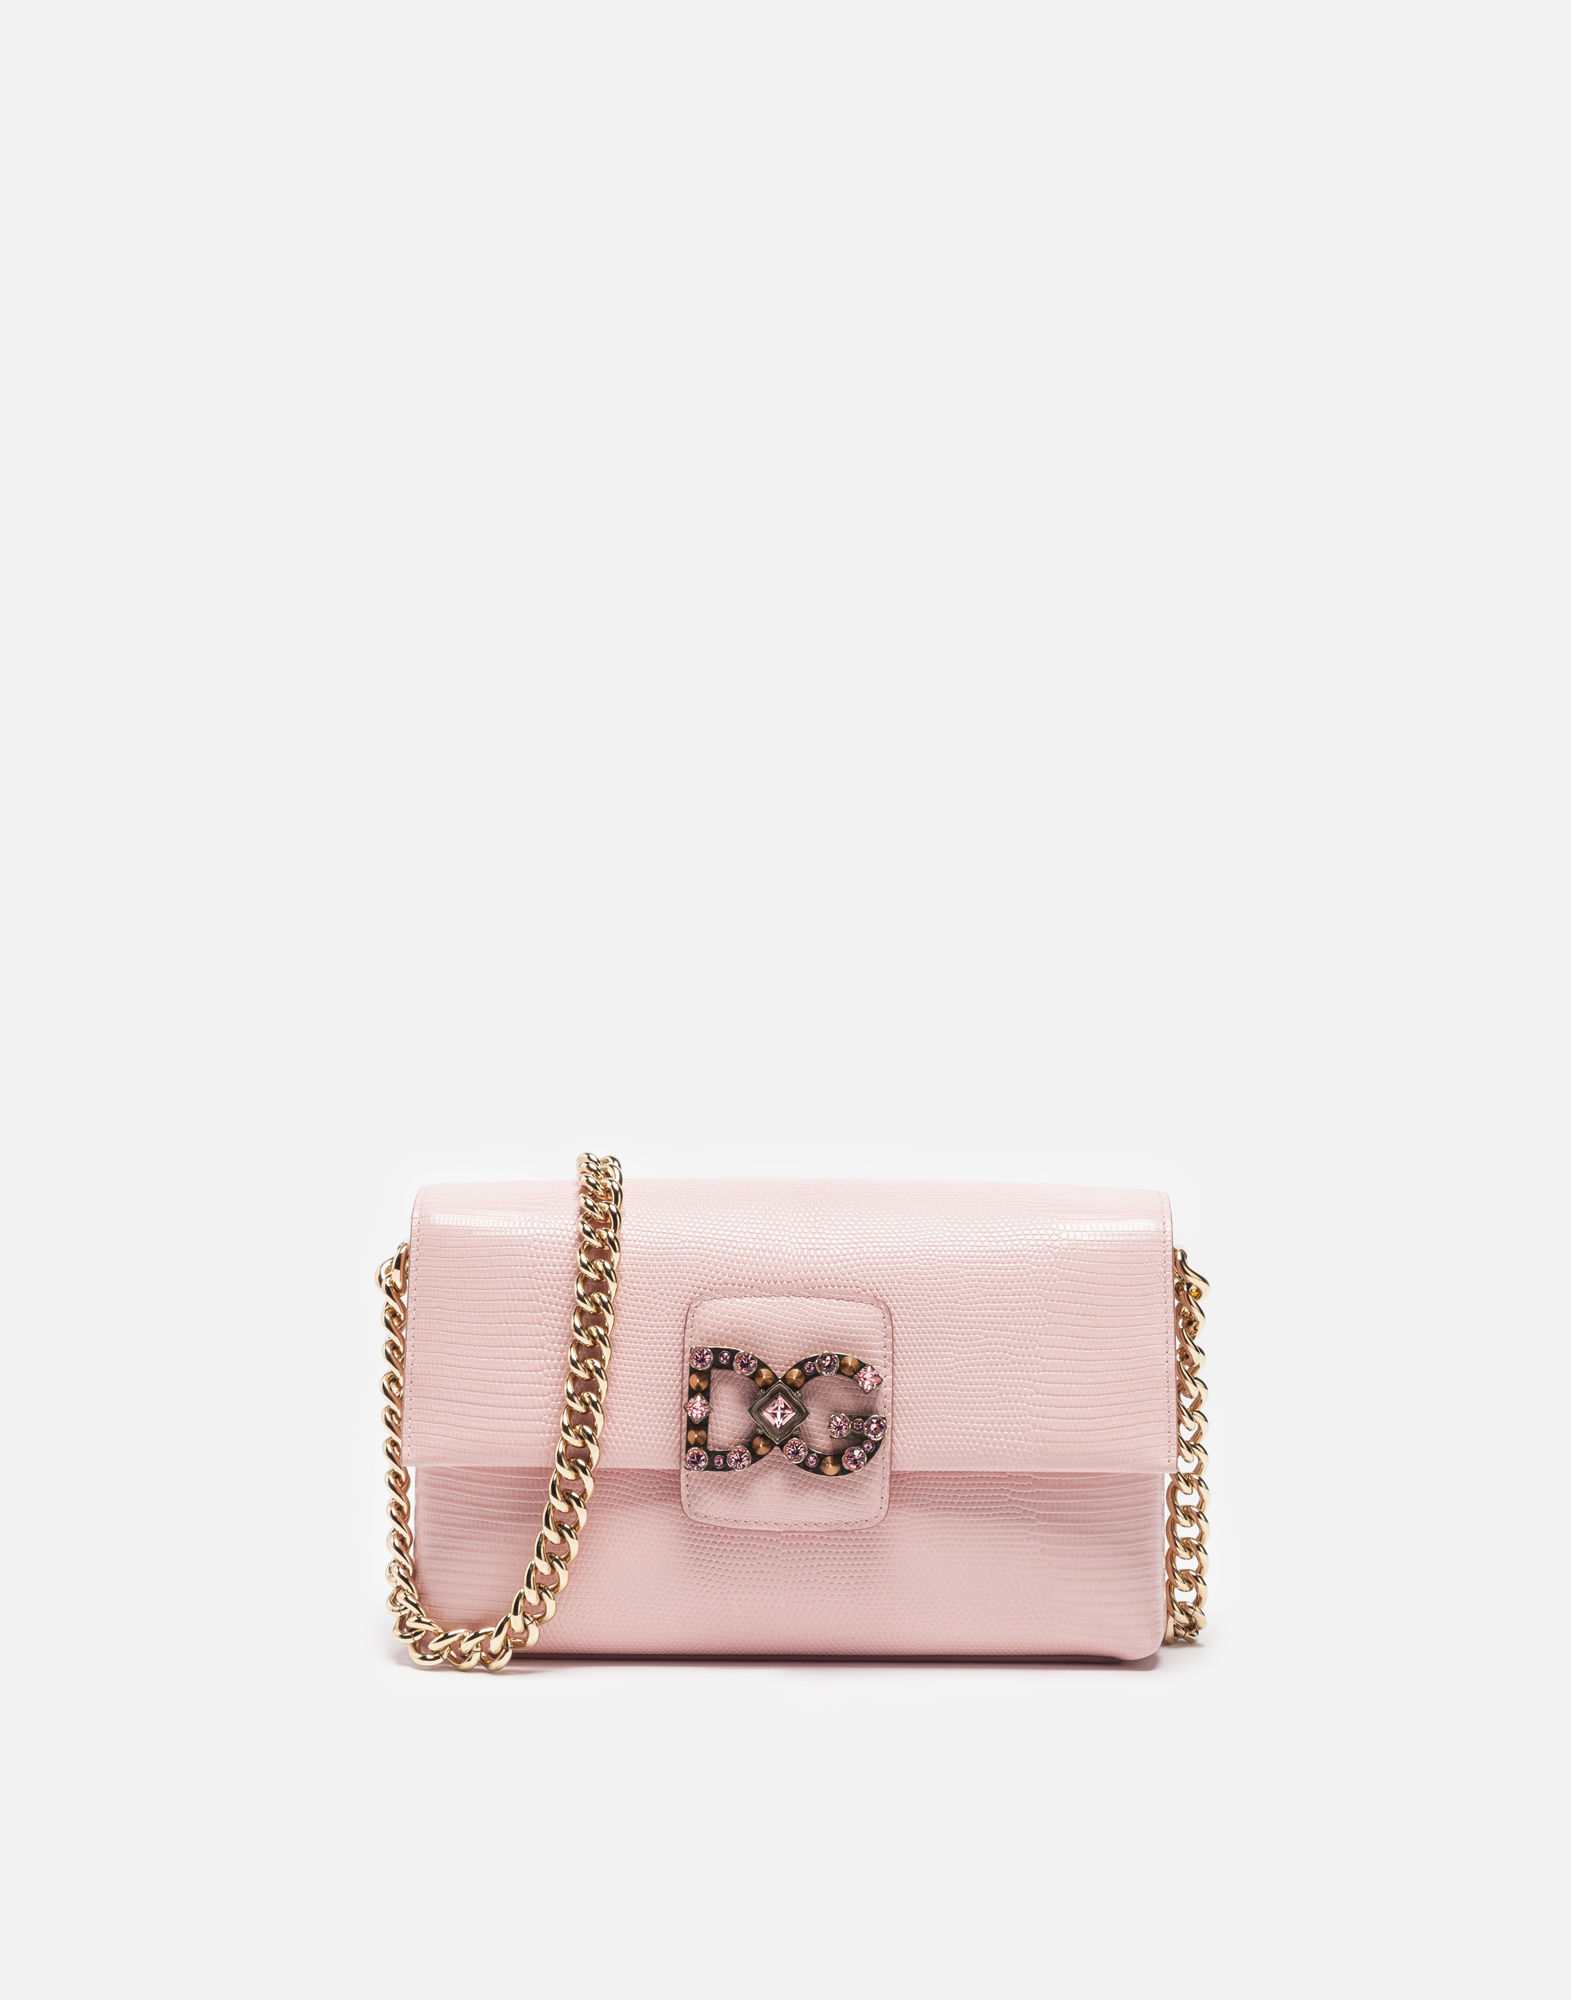 Dolce & Gabbana Leathers DG MILLENNIALS BAG IN LEATHER